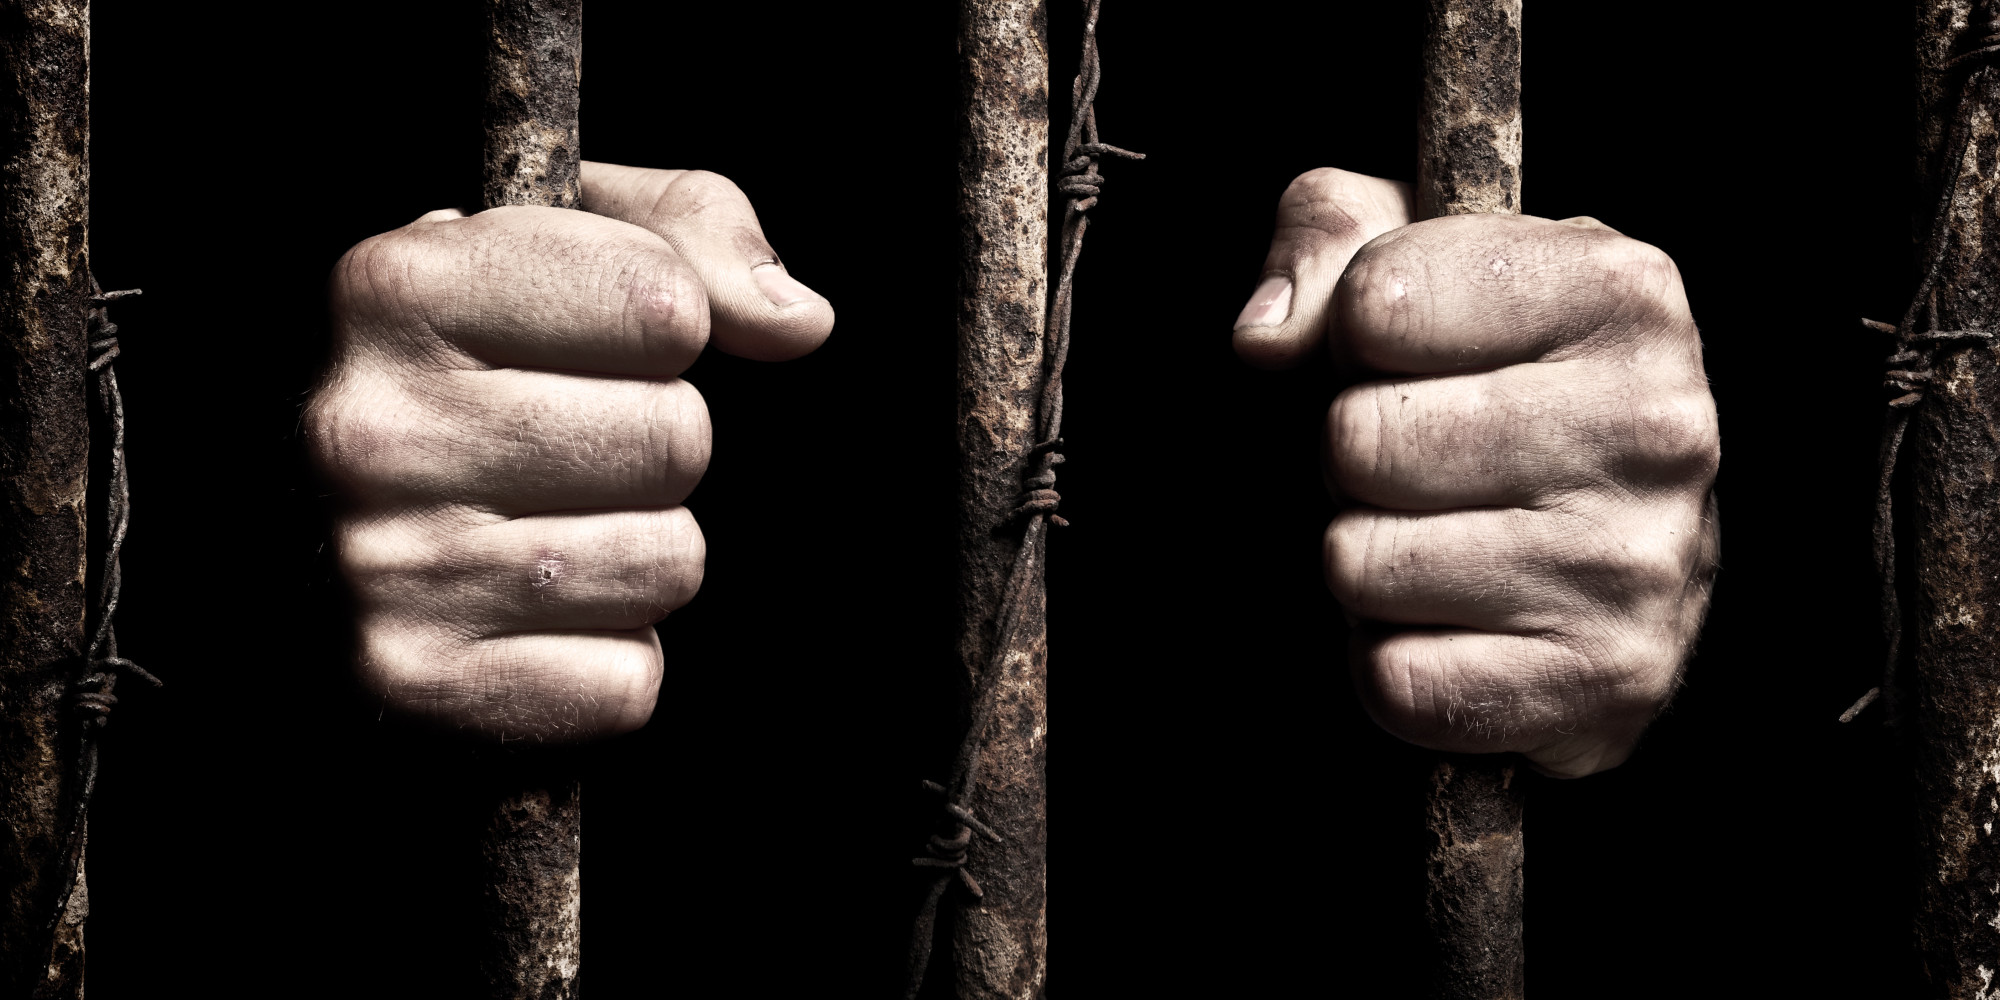 Growing Up in Prison: What I've Learned During My Eight Years of Incarceration